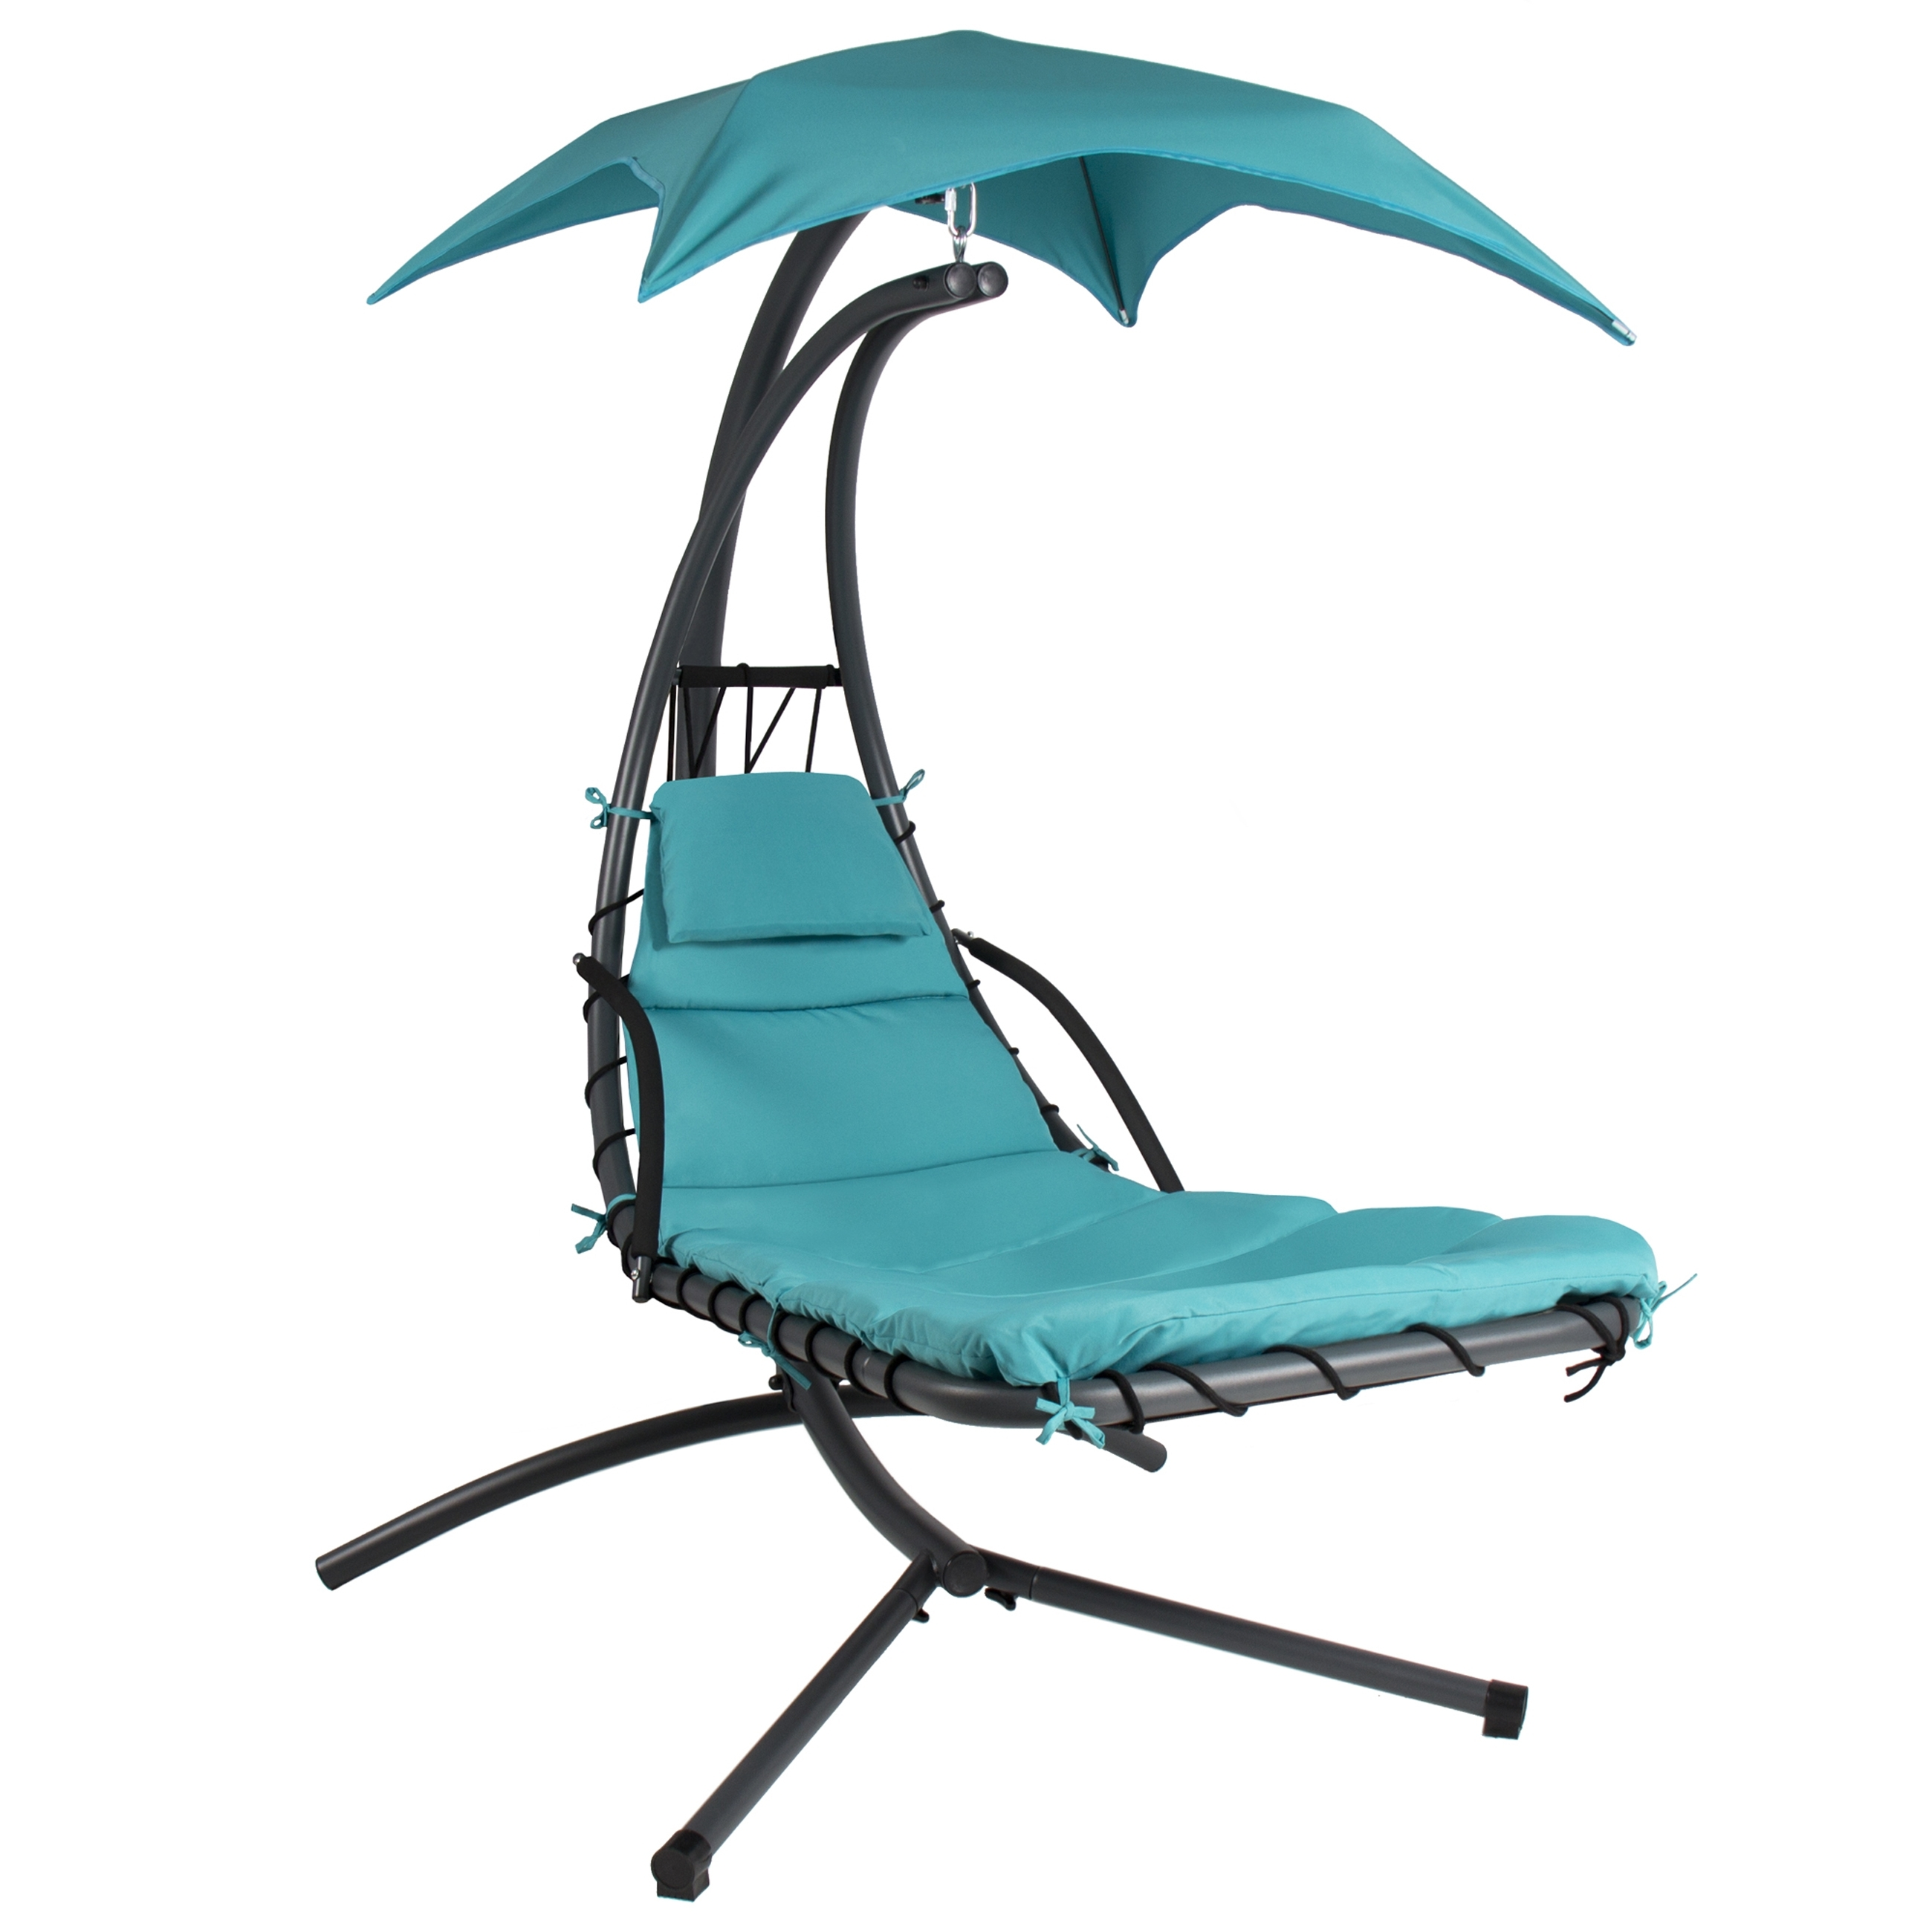 Hanging Chaise Lounger Chair Arc Stand Air Porch Swing Hammock Pertaining To 2018 Chaise Lounge Swing Chairs (View 8 of 15)